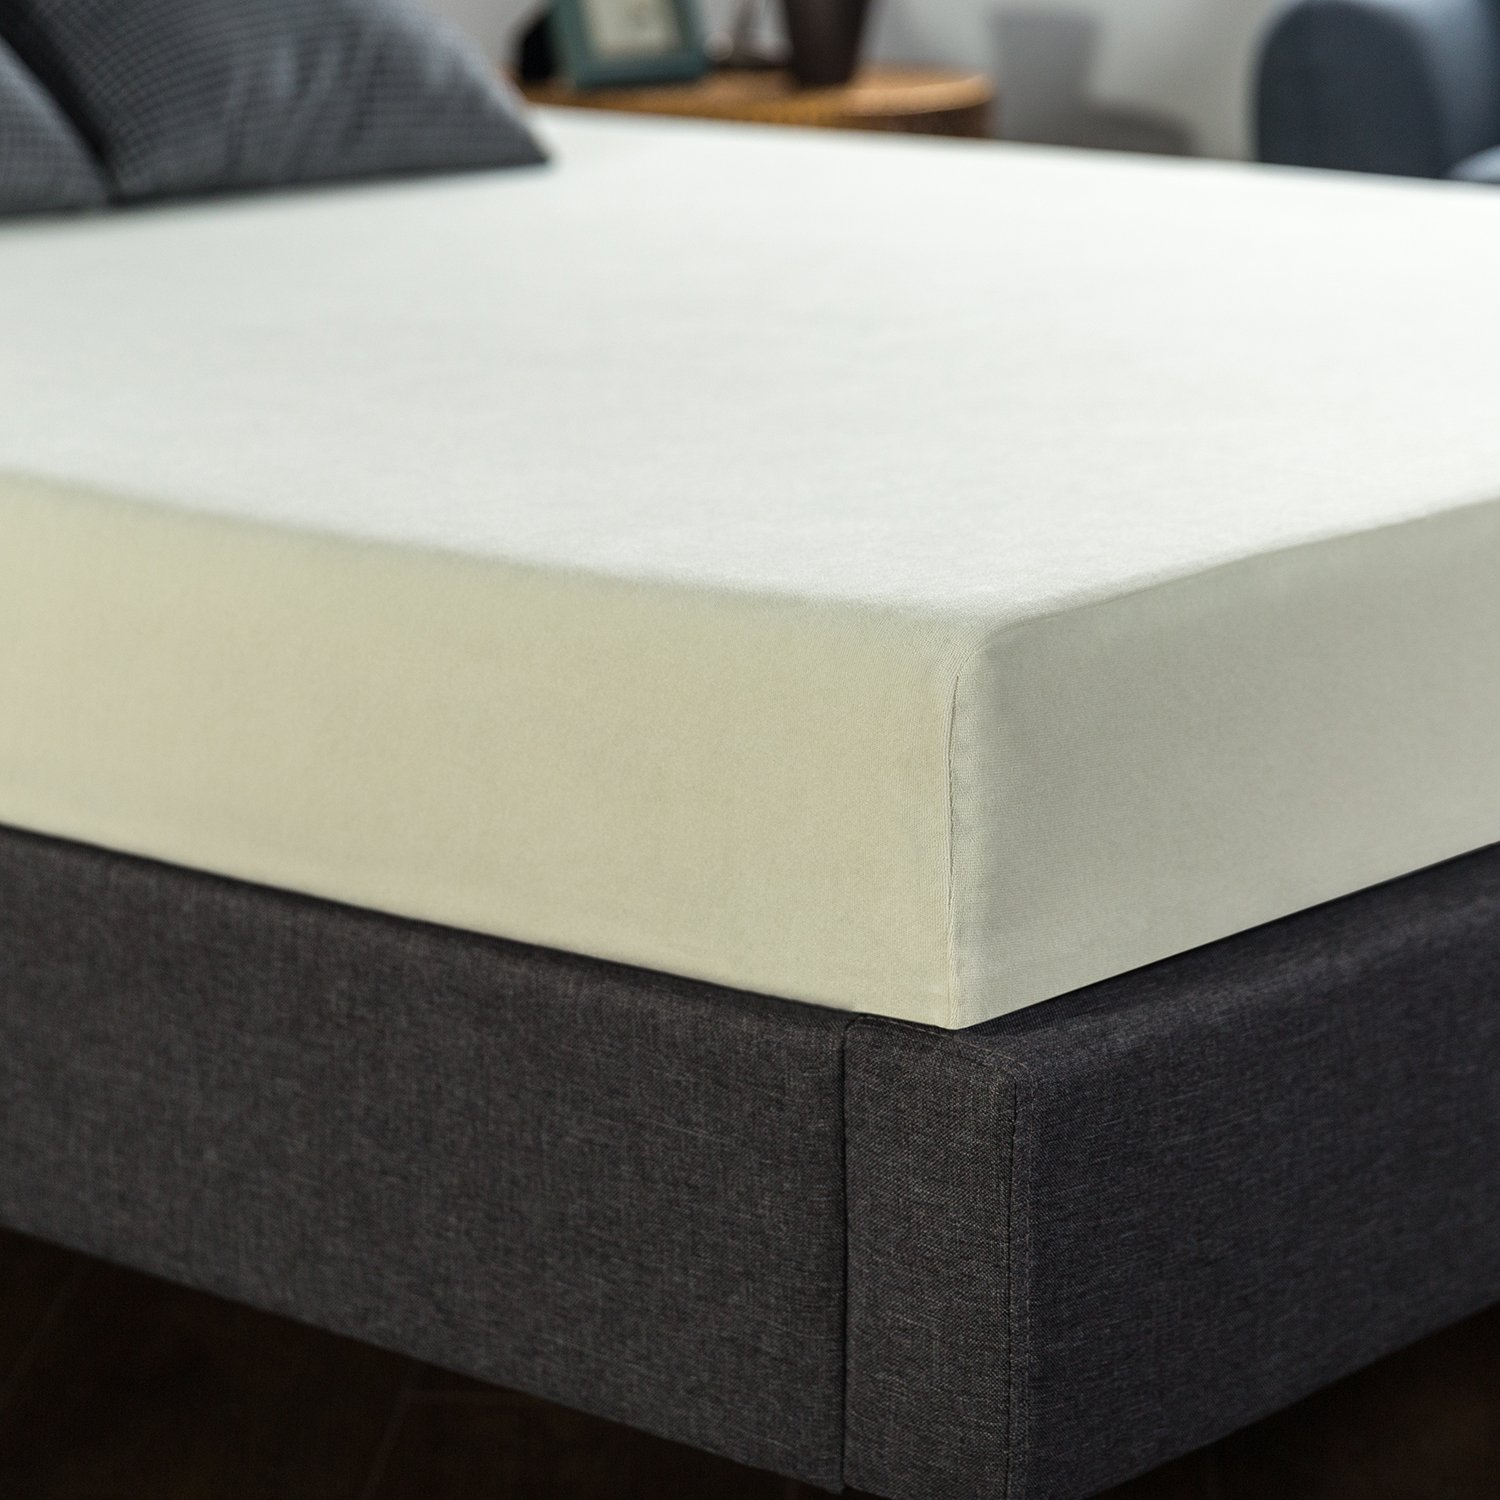 Ultimate comfort memory foam 6 inch mattress queen for Are memory foam mattresses comfortable